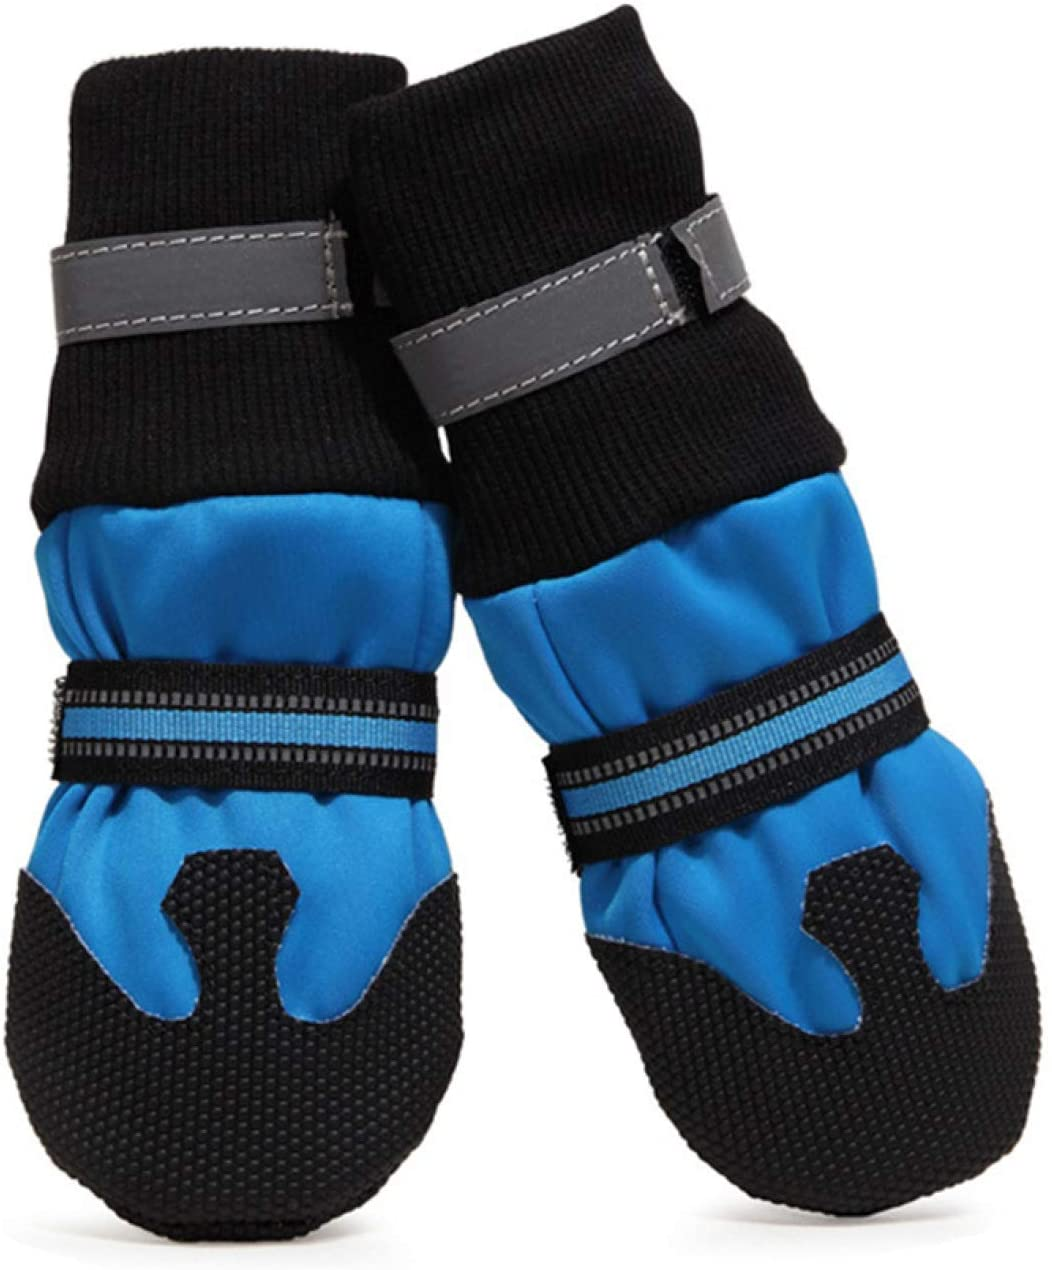 Jim Hugh Waterproof Dogs and Cats Booties Comfortable Paws Protector Skid-Proof Pets Boot with Reflective Strap for Dogs and Cats 4Pcs/Set